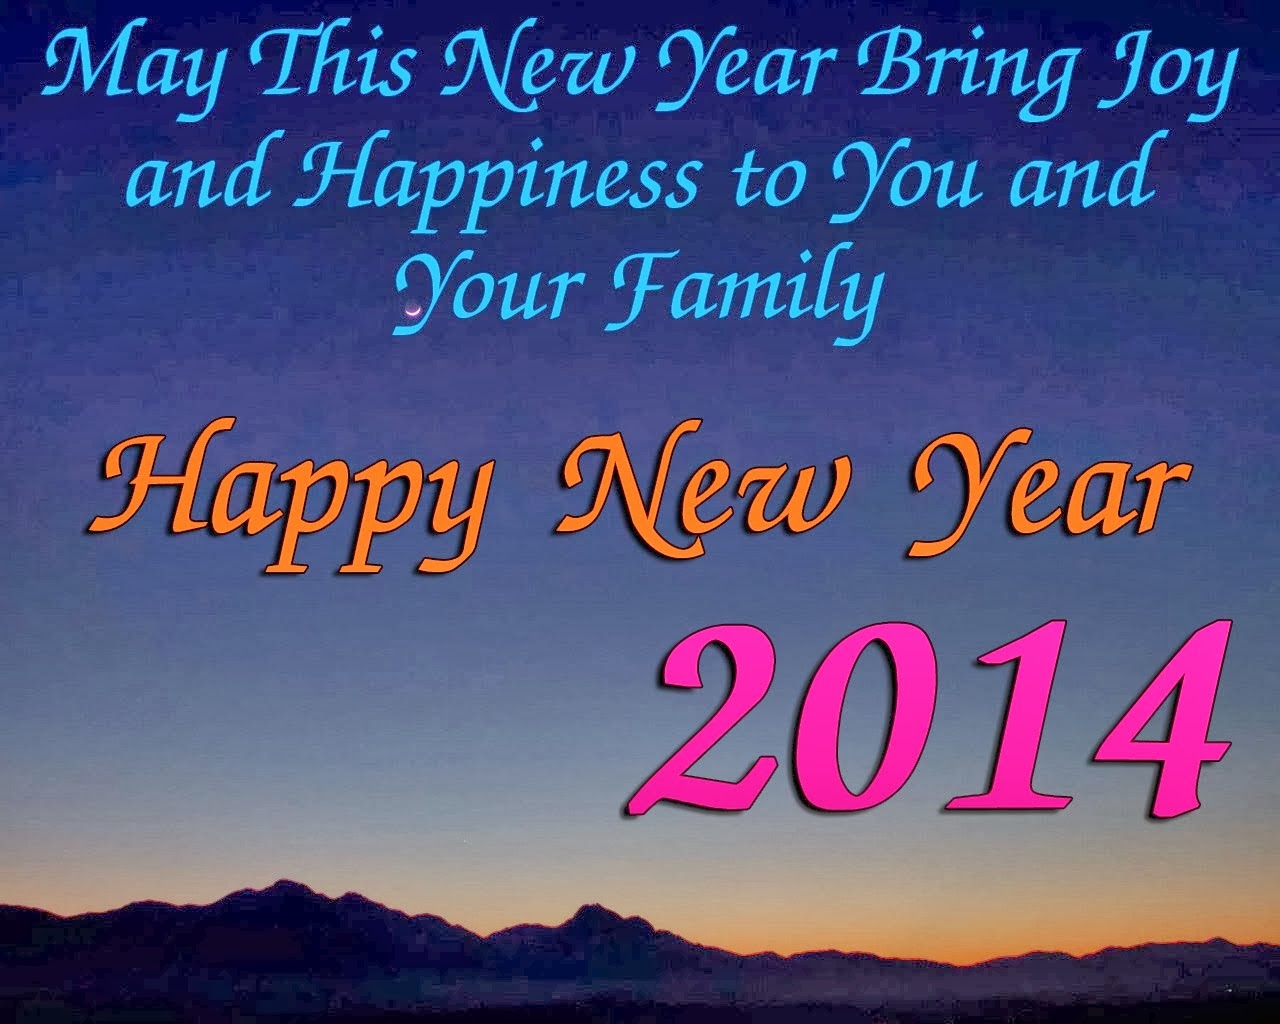 Download New Year 2014 Pictures Wallpapers In 1080 Pixels.8 Chinese New Year Sayings Greetings 2014